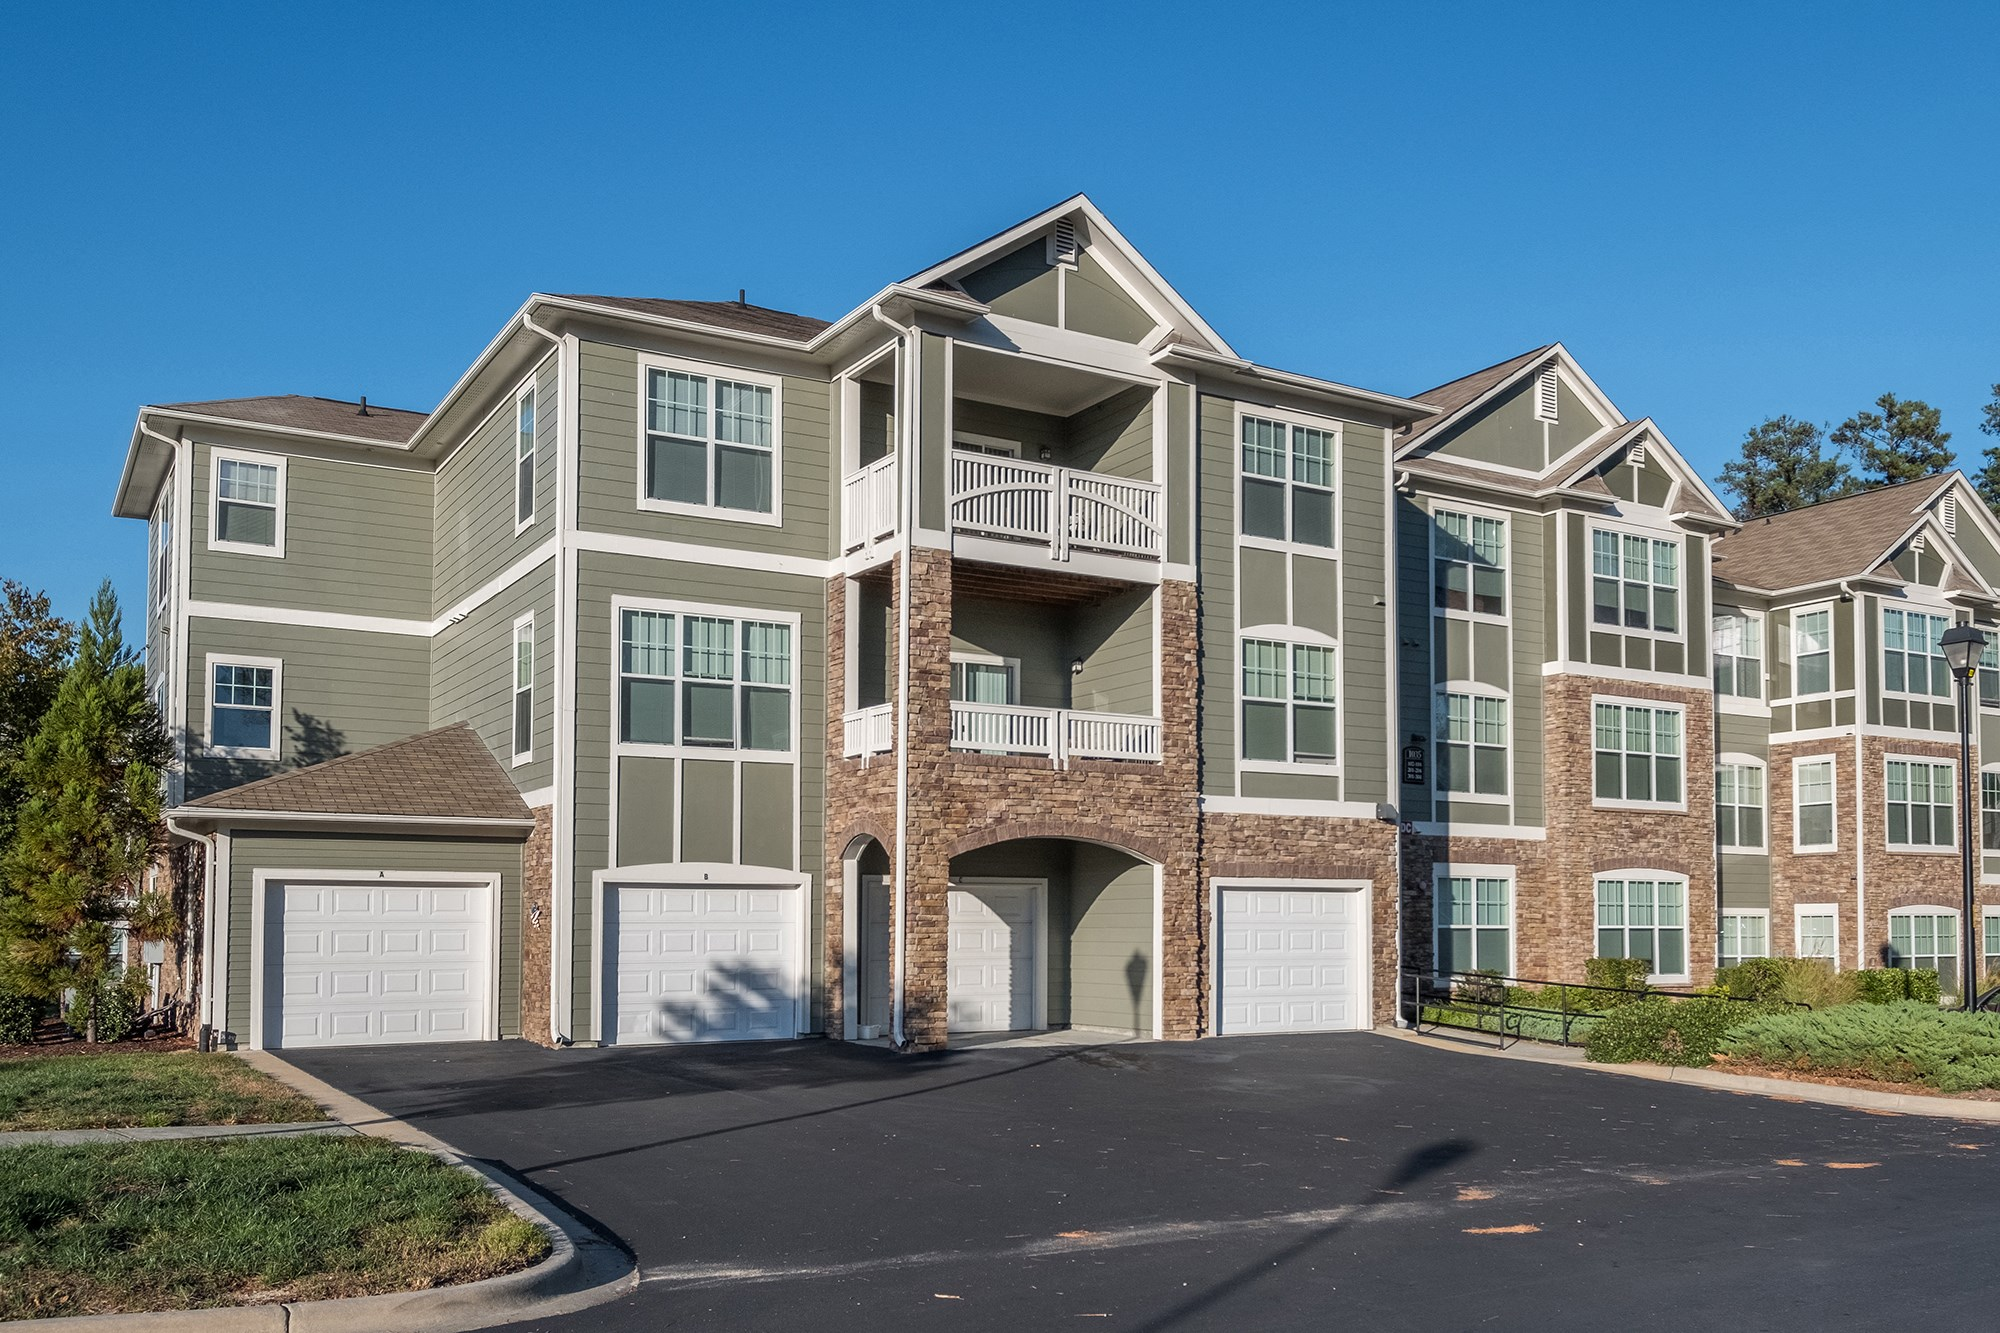 Exterior at View at Legacy Oaks Apartments in Knightdale, NC